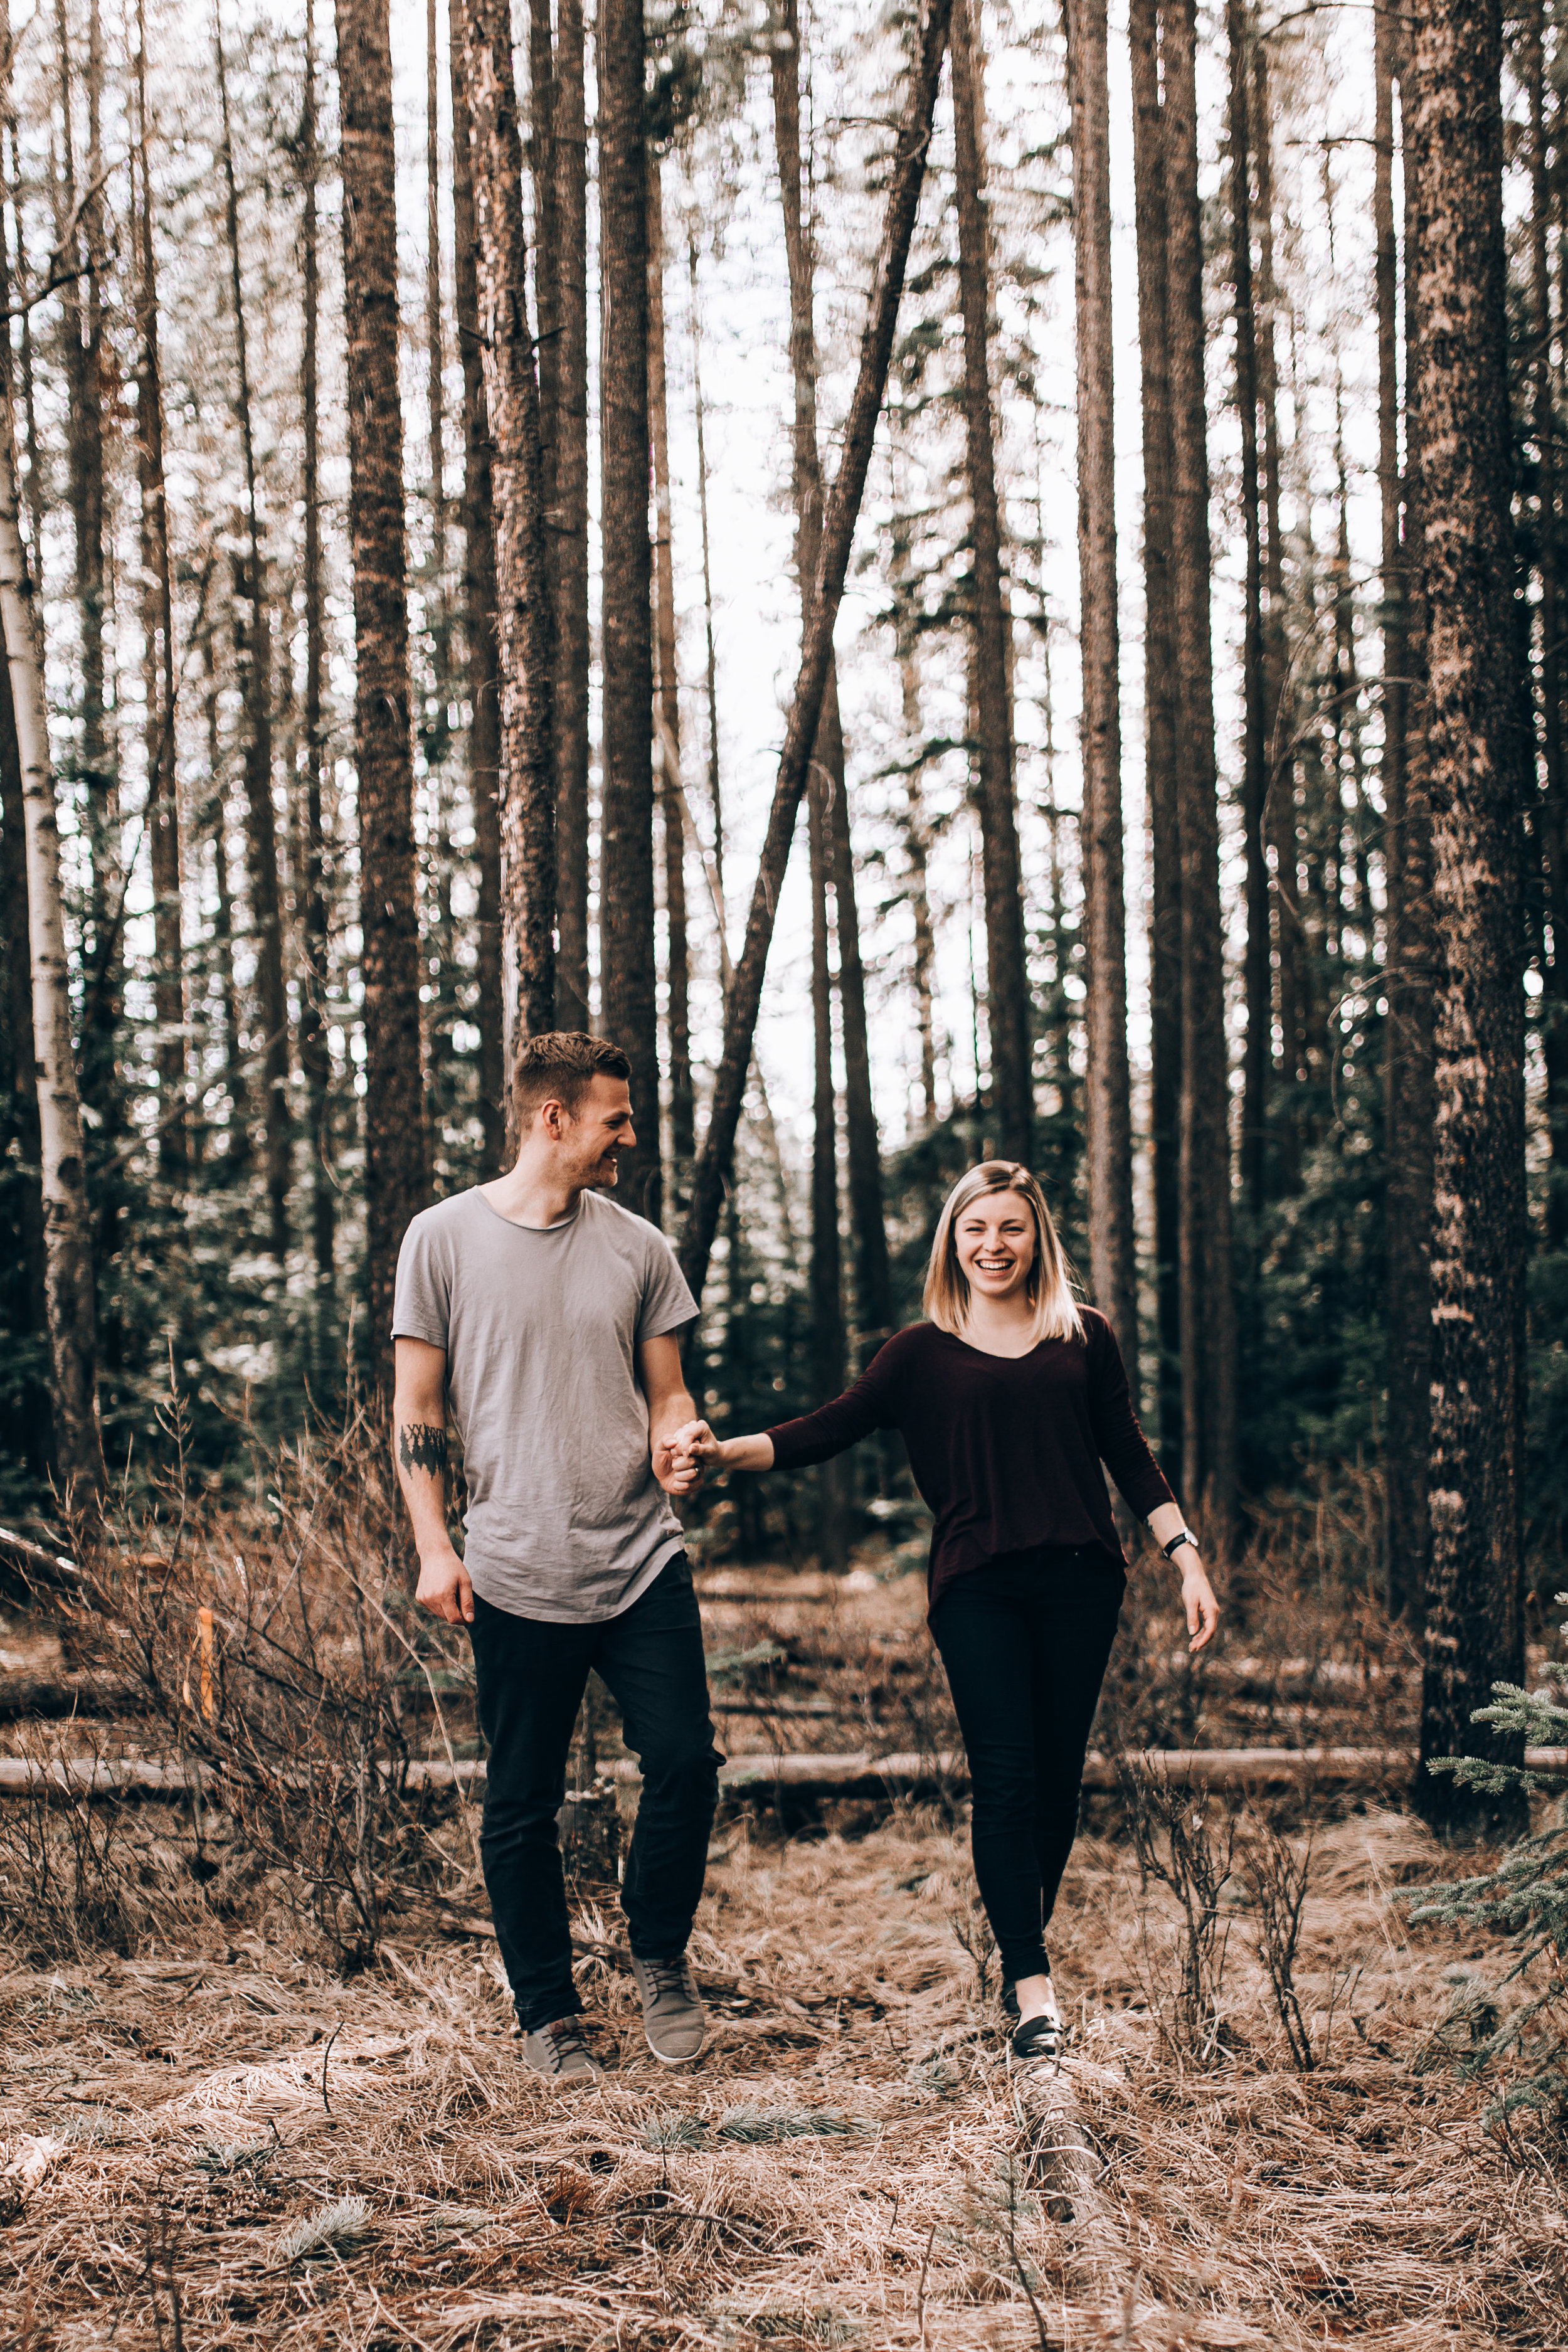 simpleperfectionsphotography.cullen+chelsey-22.jpg